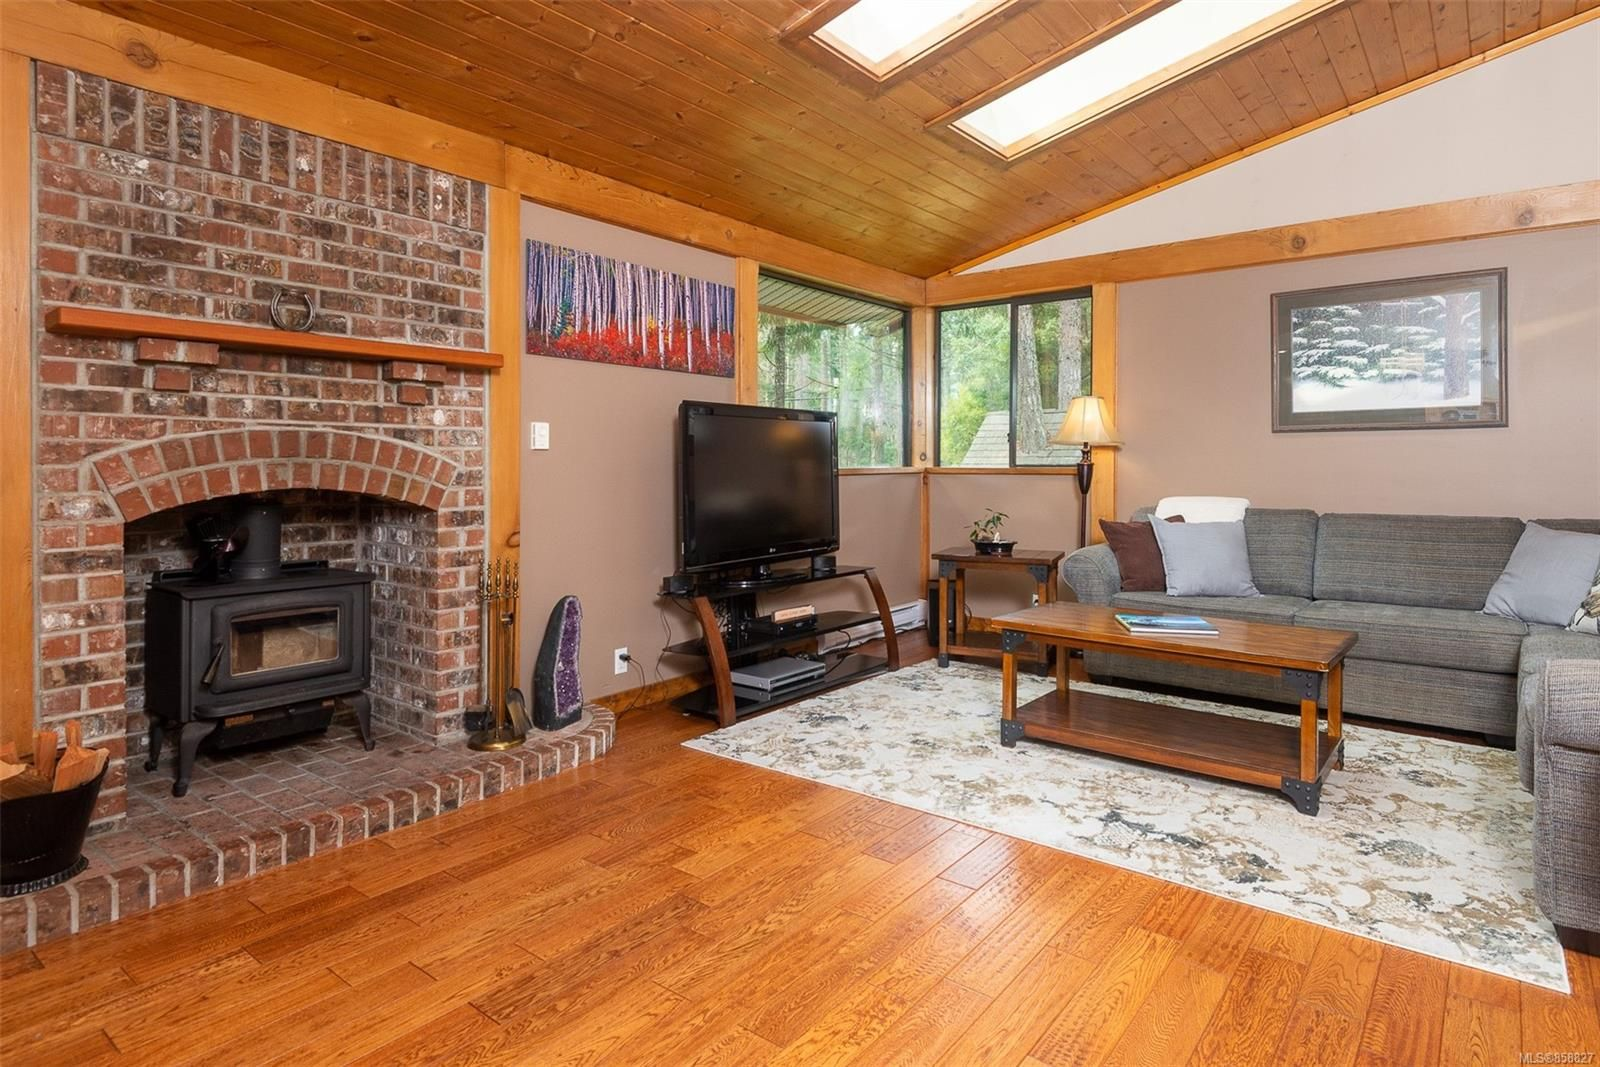 Photo 4: Photos: 1137 North End Rd in : GI Salt Spring House for sale (Gulf Islands)  : MLS®# 858827